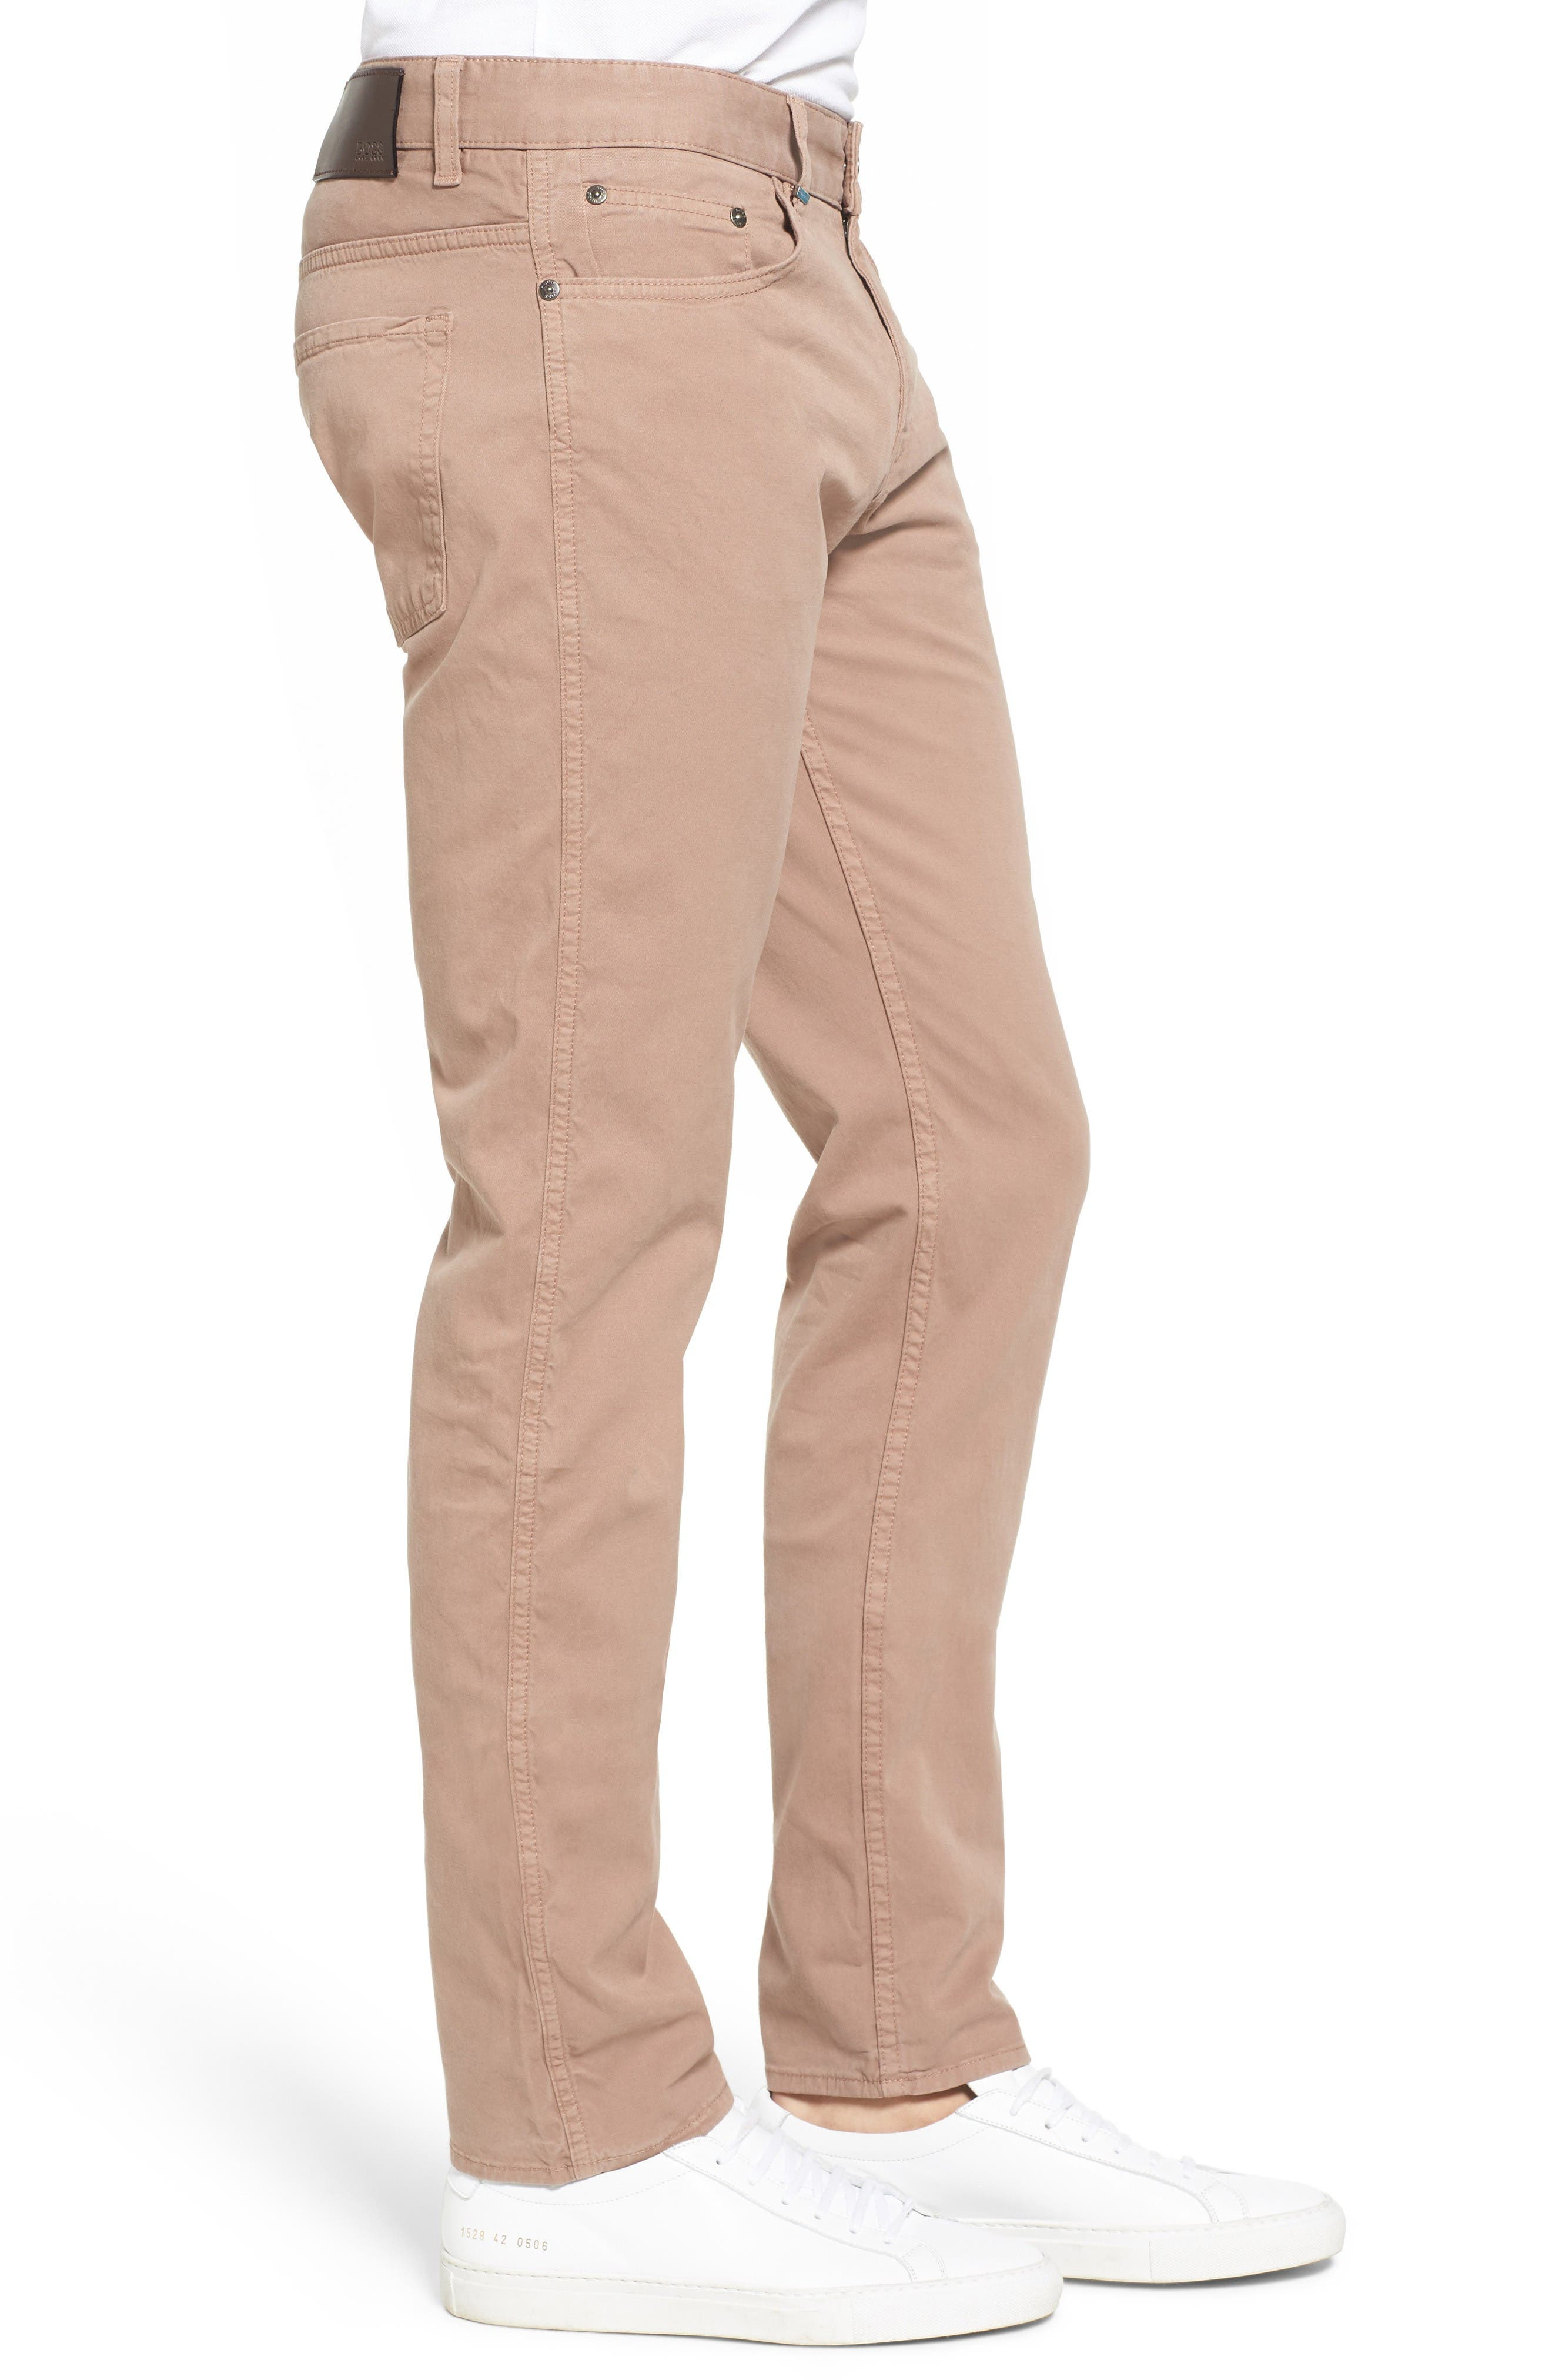 Delaware Slim Fit Stretch Cotton Pants,                             Alternate thumbnail 3, color,                             Khaki